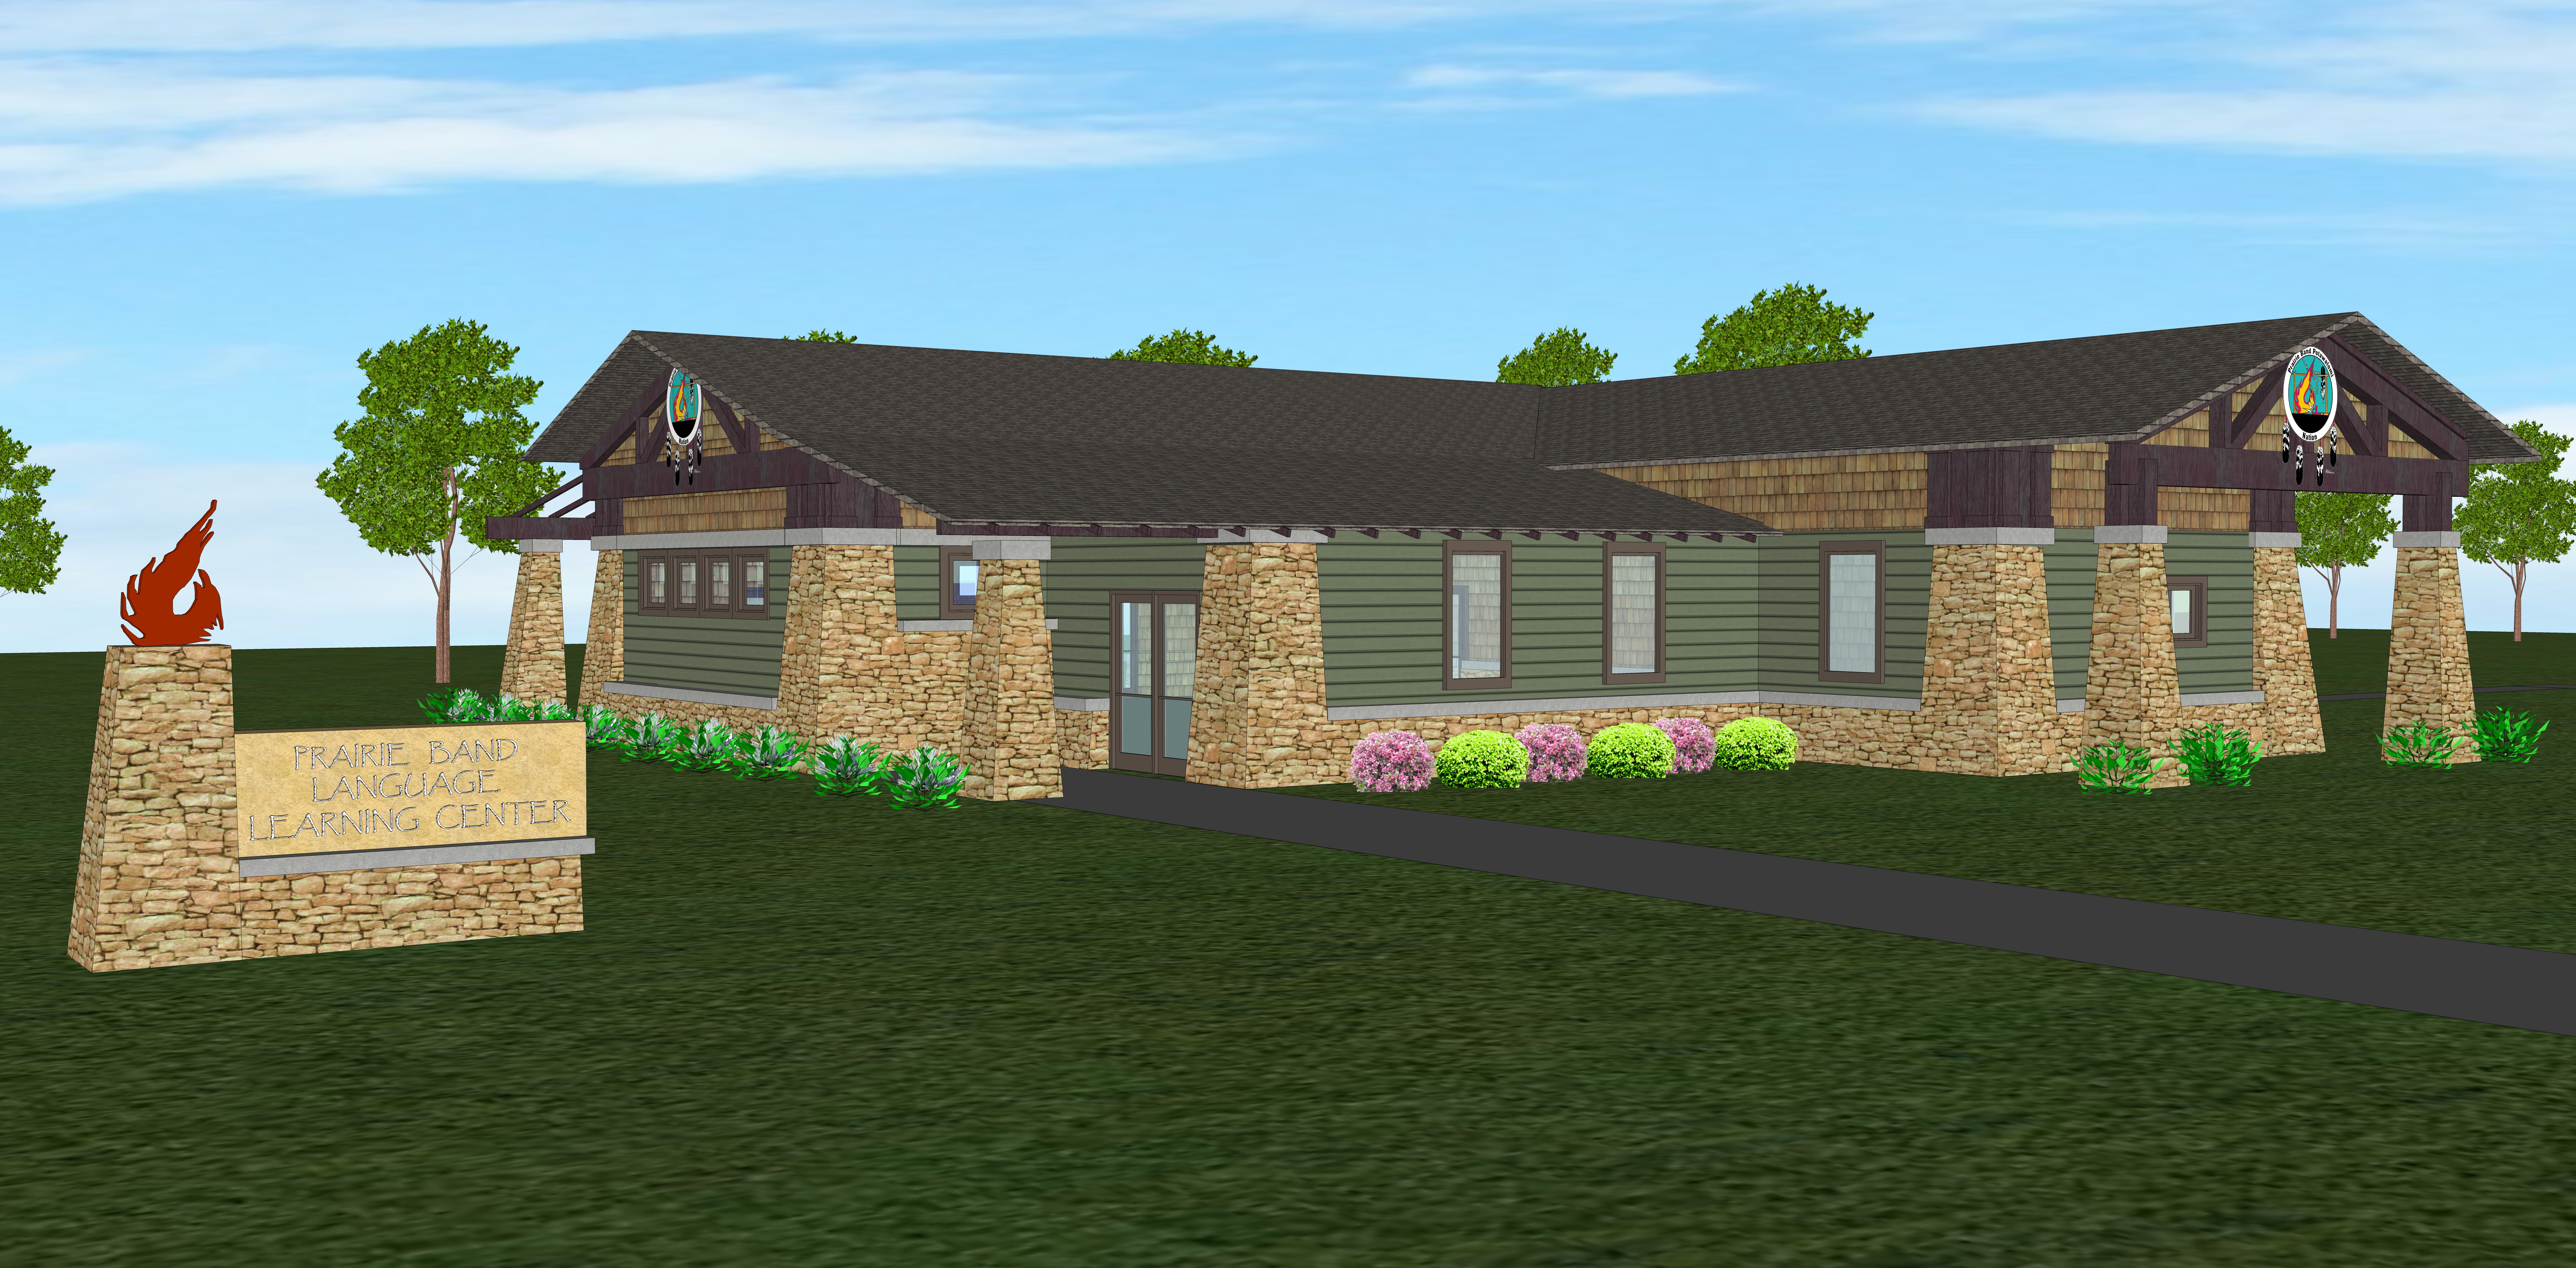 Prairie Band Learning Center 3D Concept